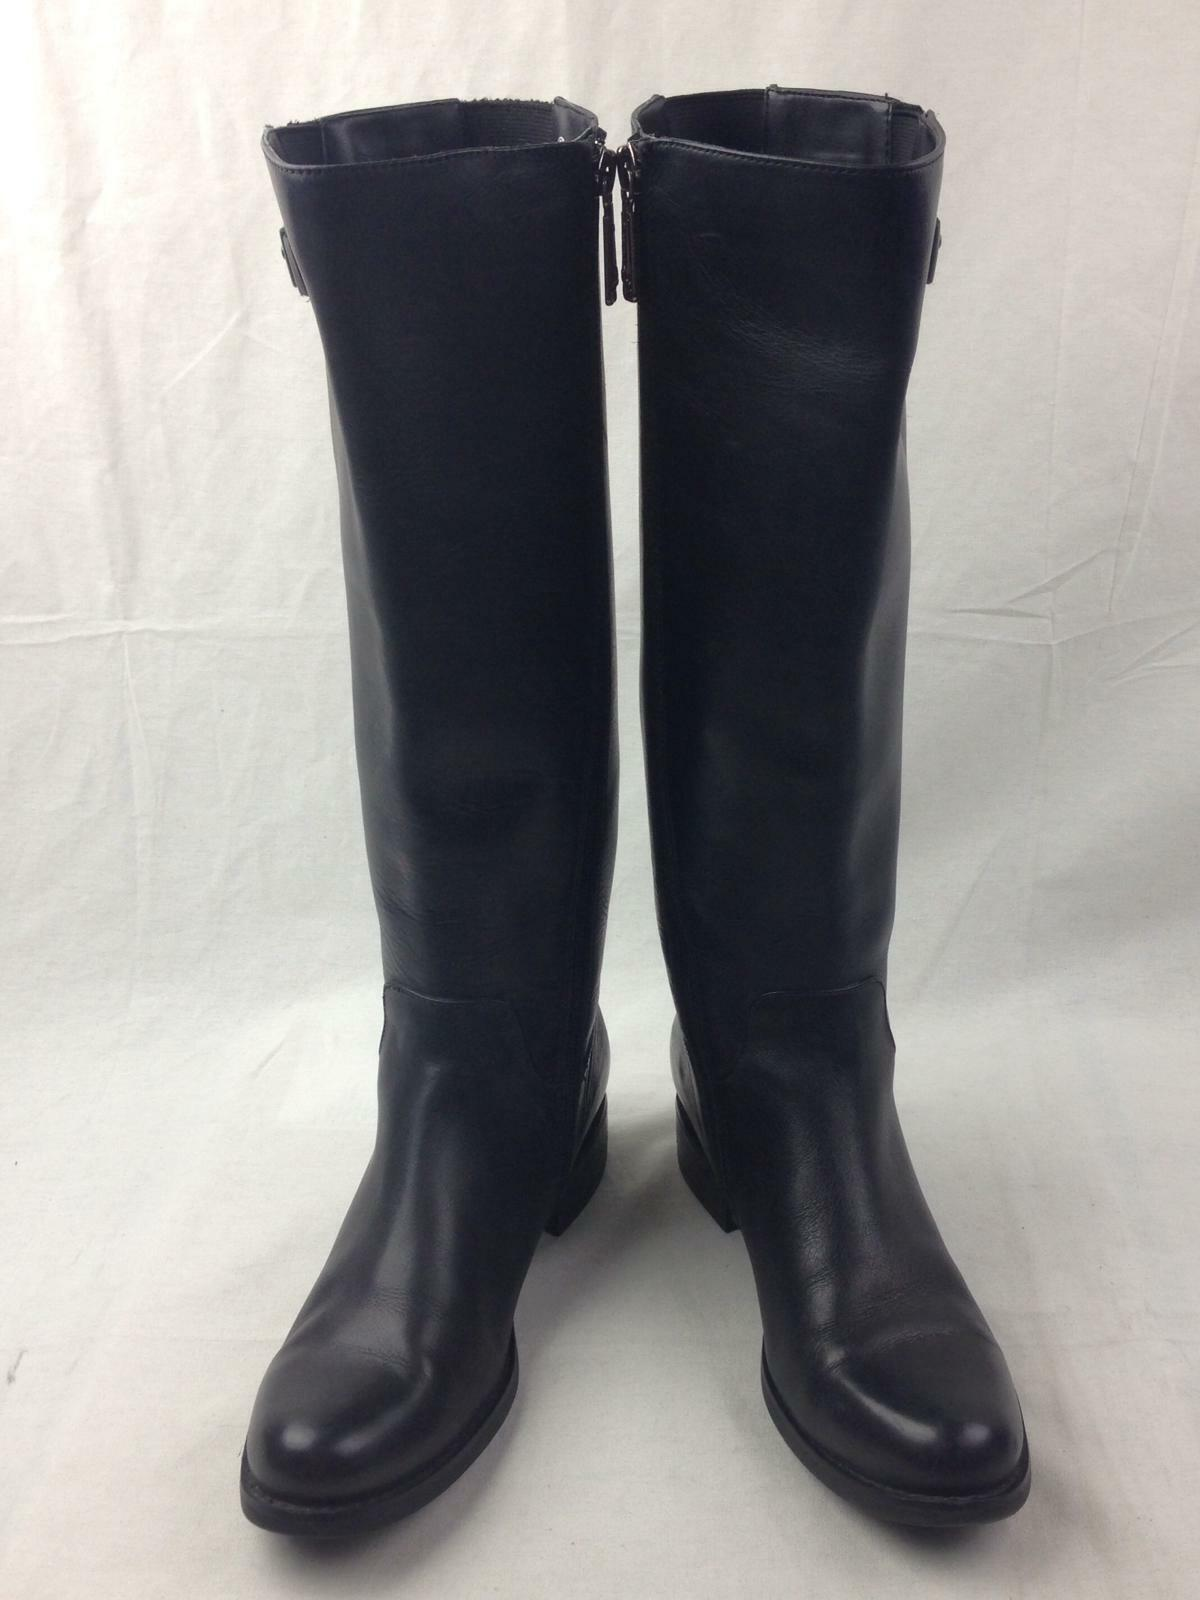 BLONDO Volly Waterproof Riding Boot sz 6.5